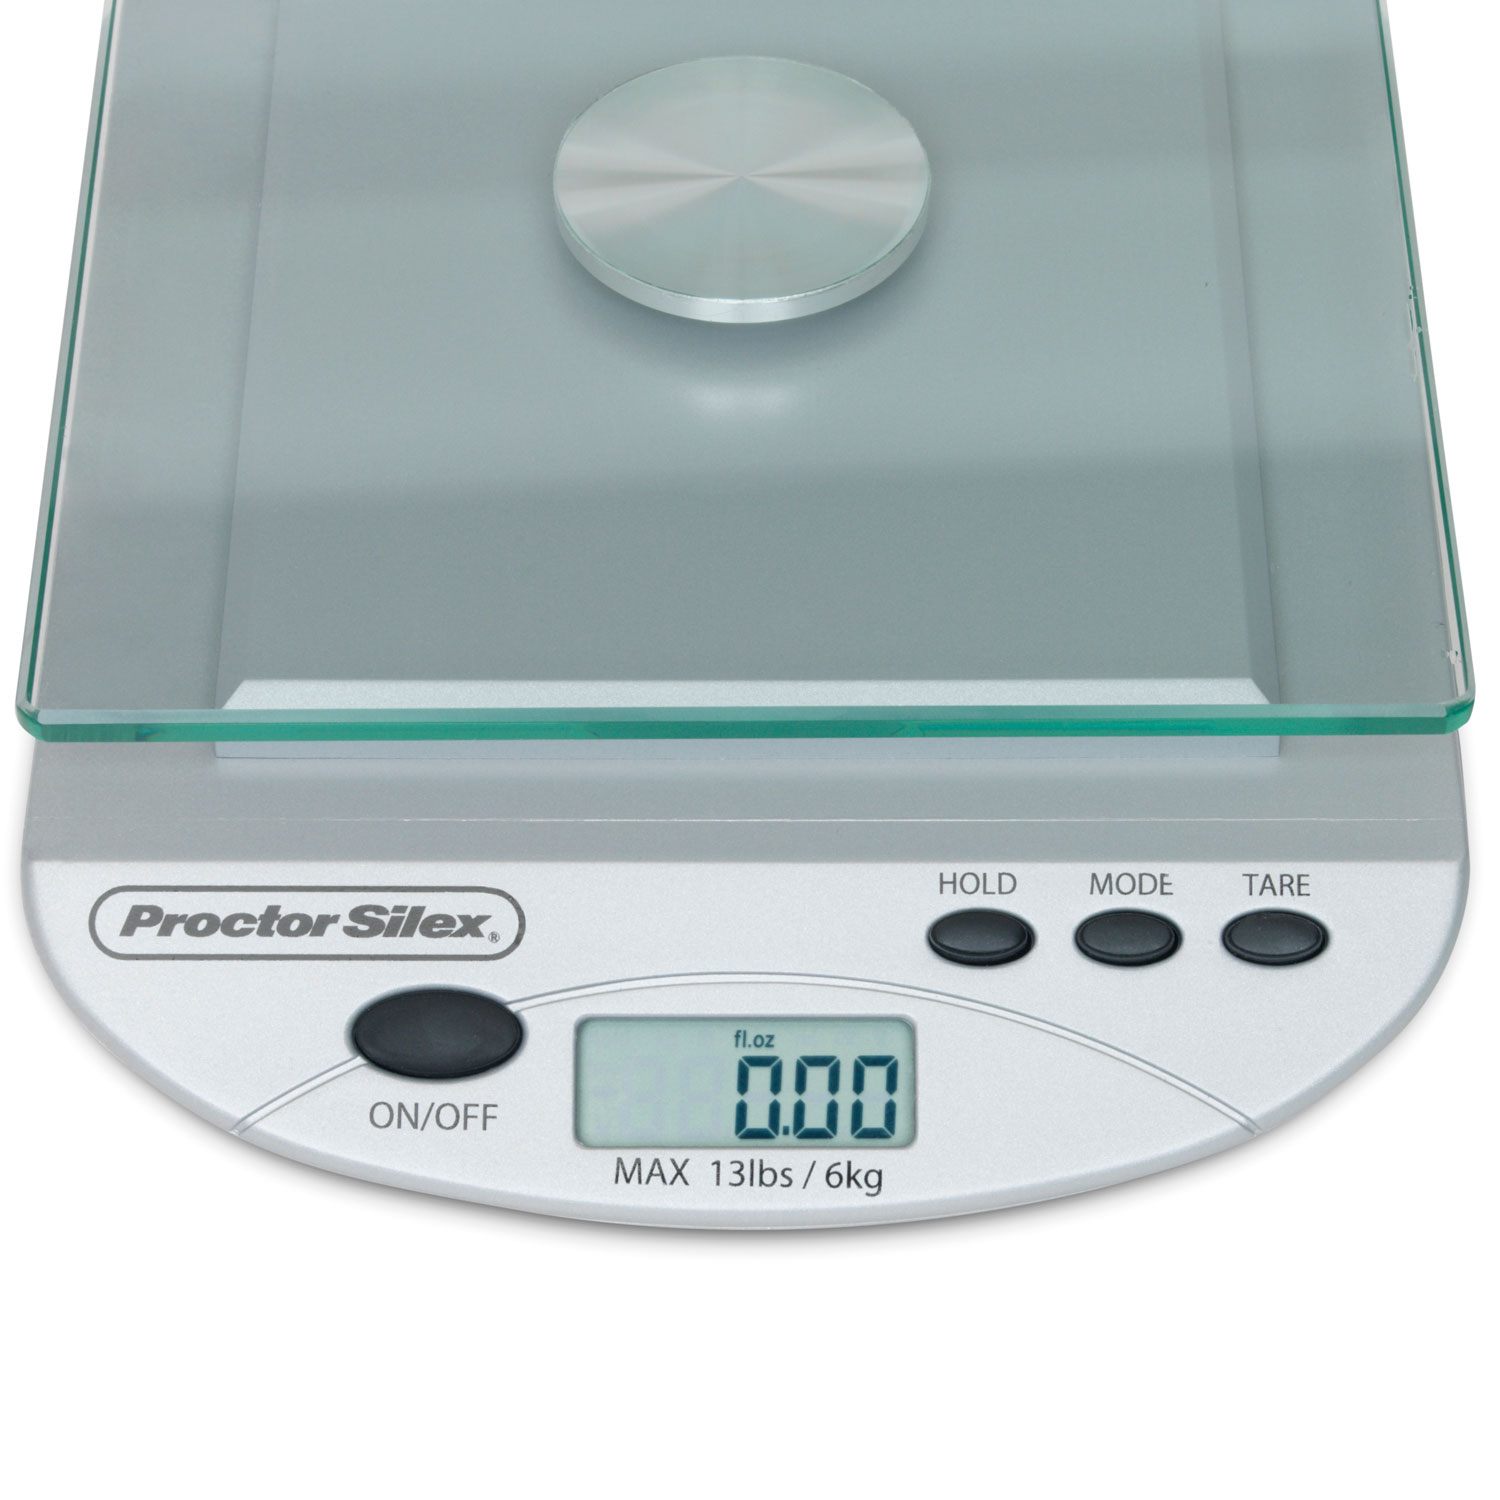 Digital Kitchen Scale - Model 86500 - ProctorSilex.com